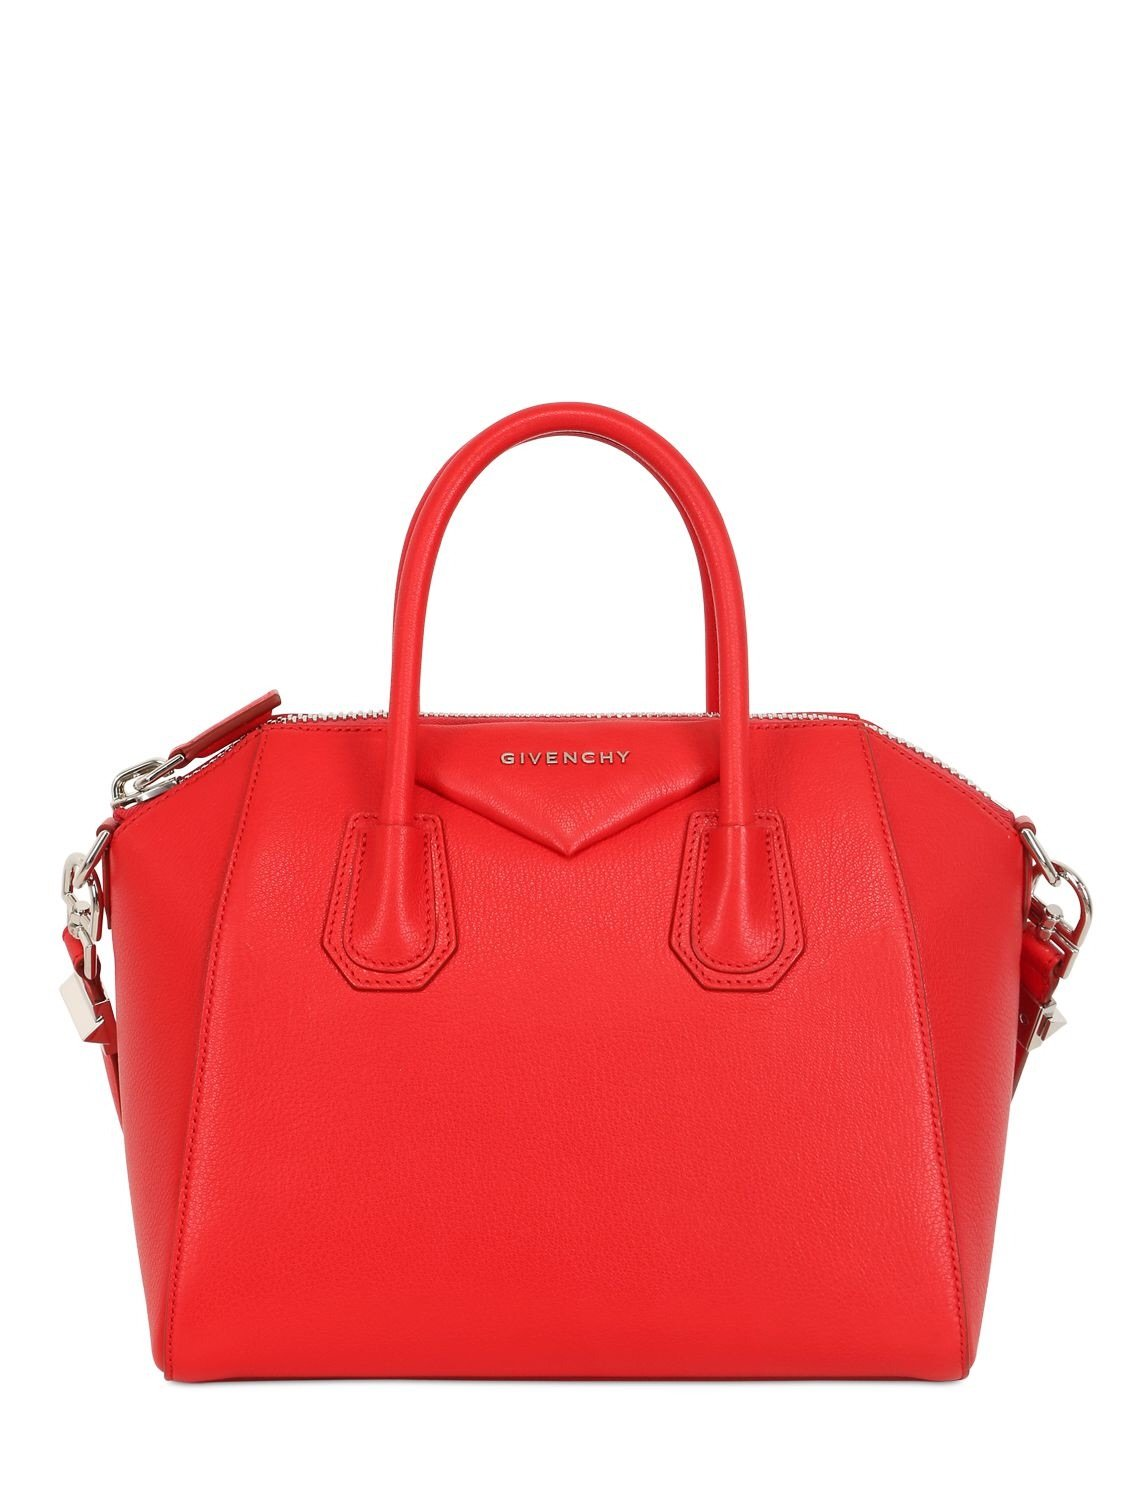 bd83b58c049 A structured everyday style, Givenchy's Antigona tote bag exudes the  elegance and glamour the label is renowned for. Punctuated with signature  silver-tone ...